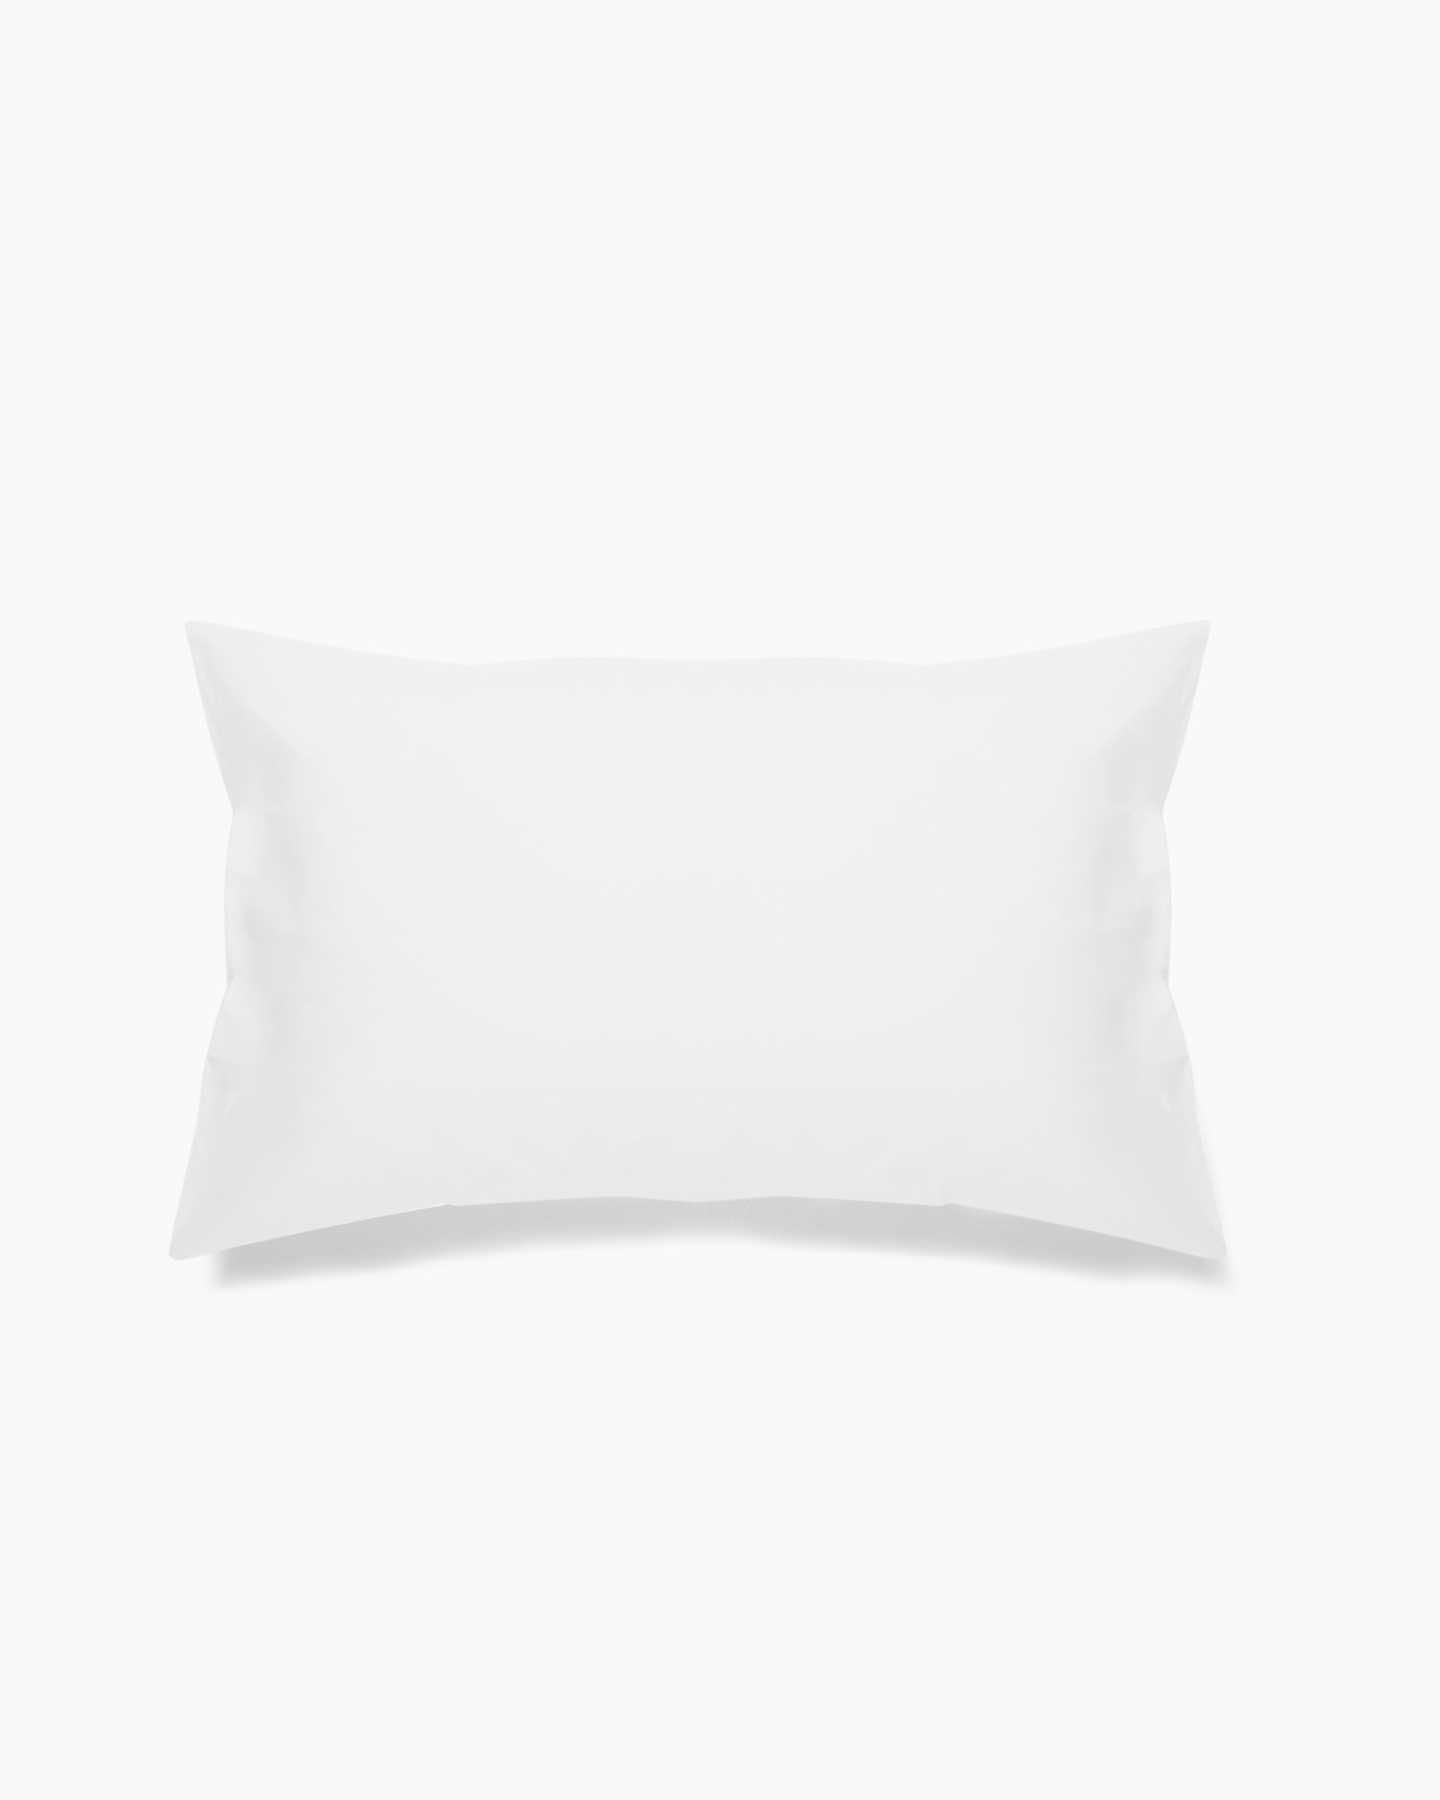 Pair With - Organic Percale Luxe Pillowcases - Light Grey